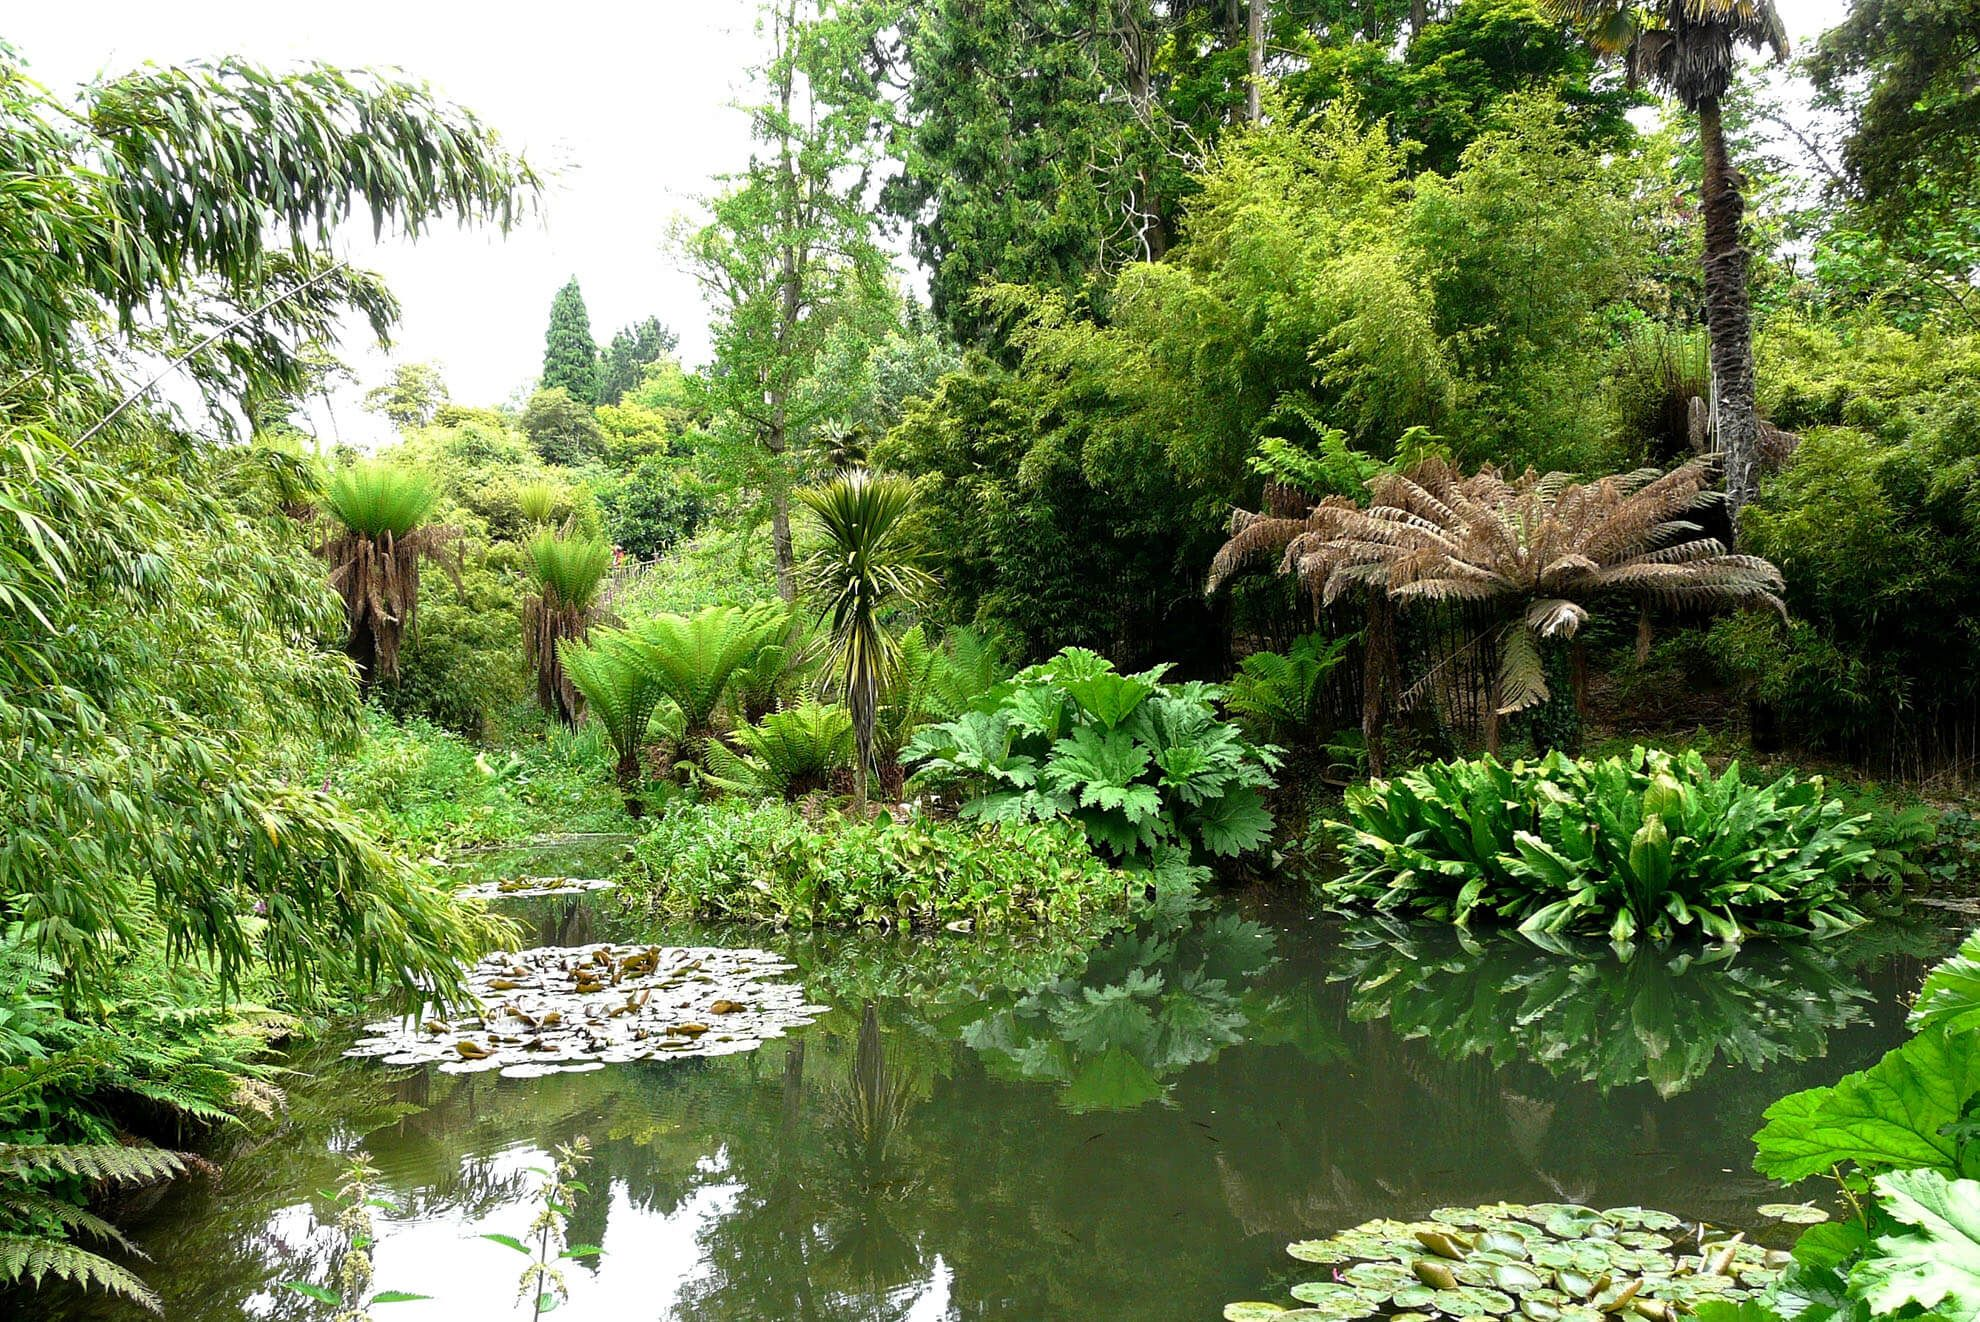 Explore over 200 acres at The Lost Gardens of Heligan